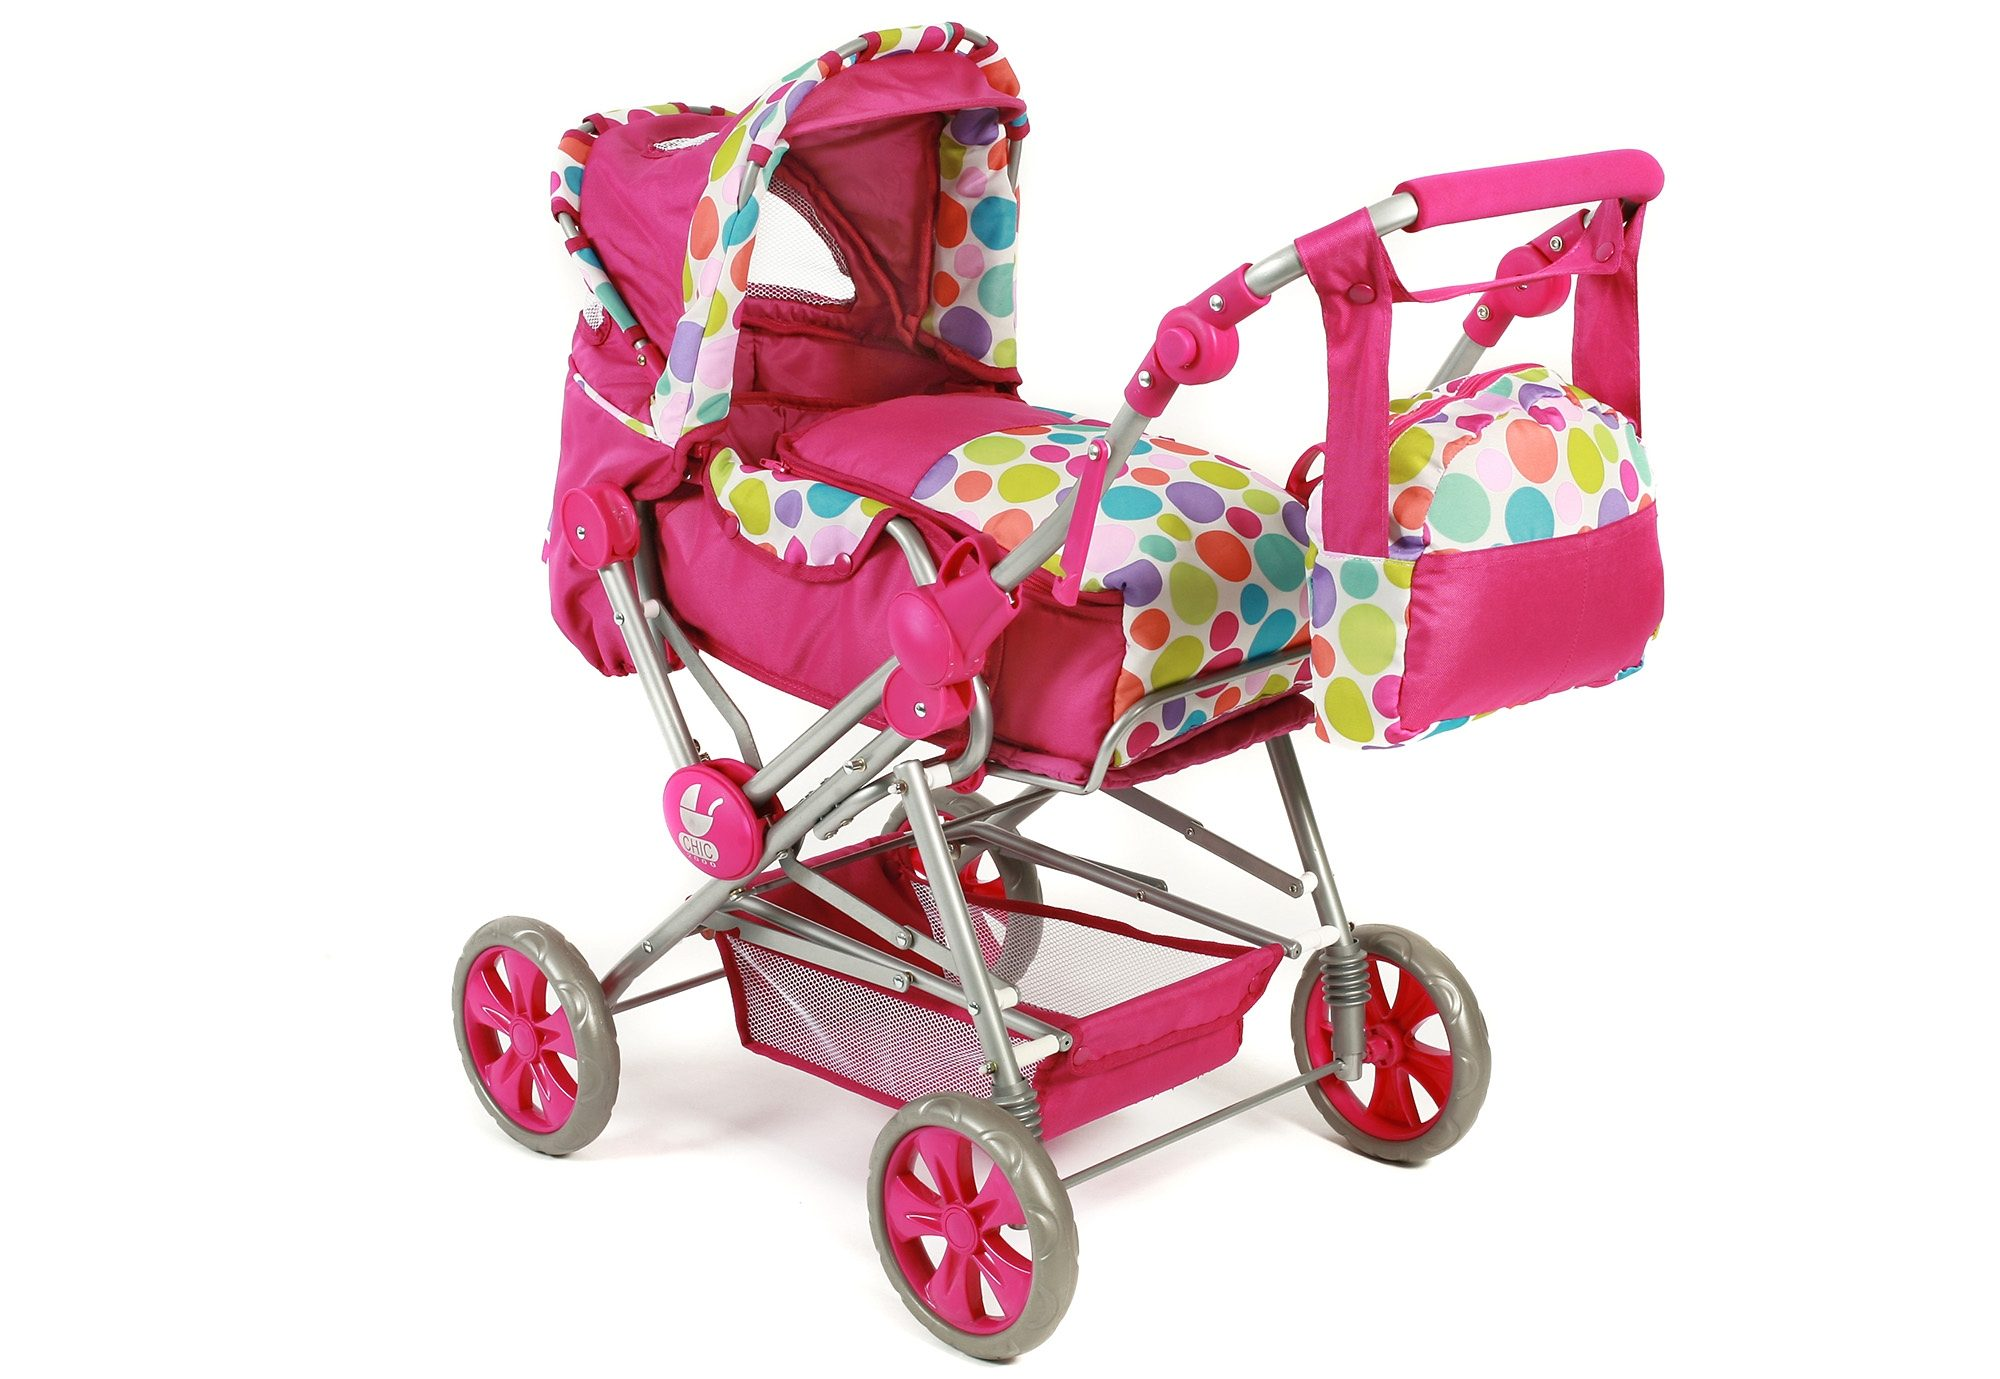 CHIC2000 Puppenwagen mit Tasche, »Road Star, Pink Bubble«